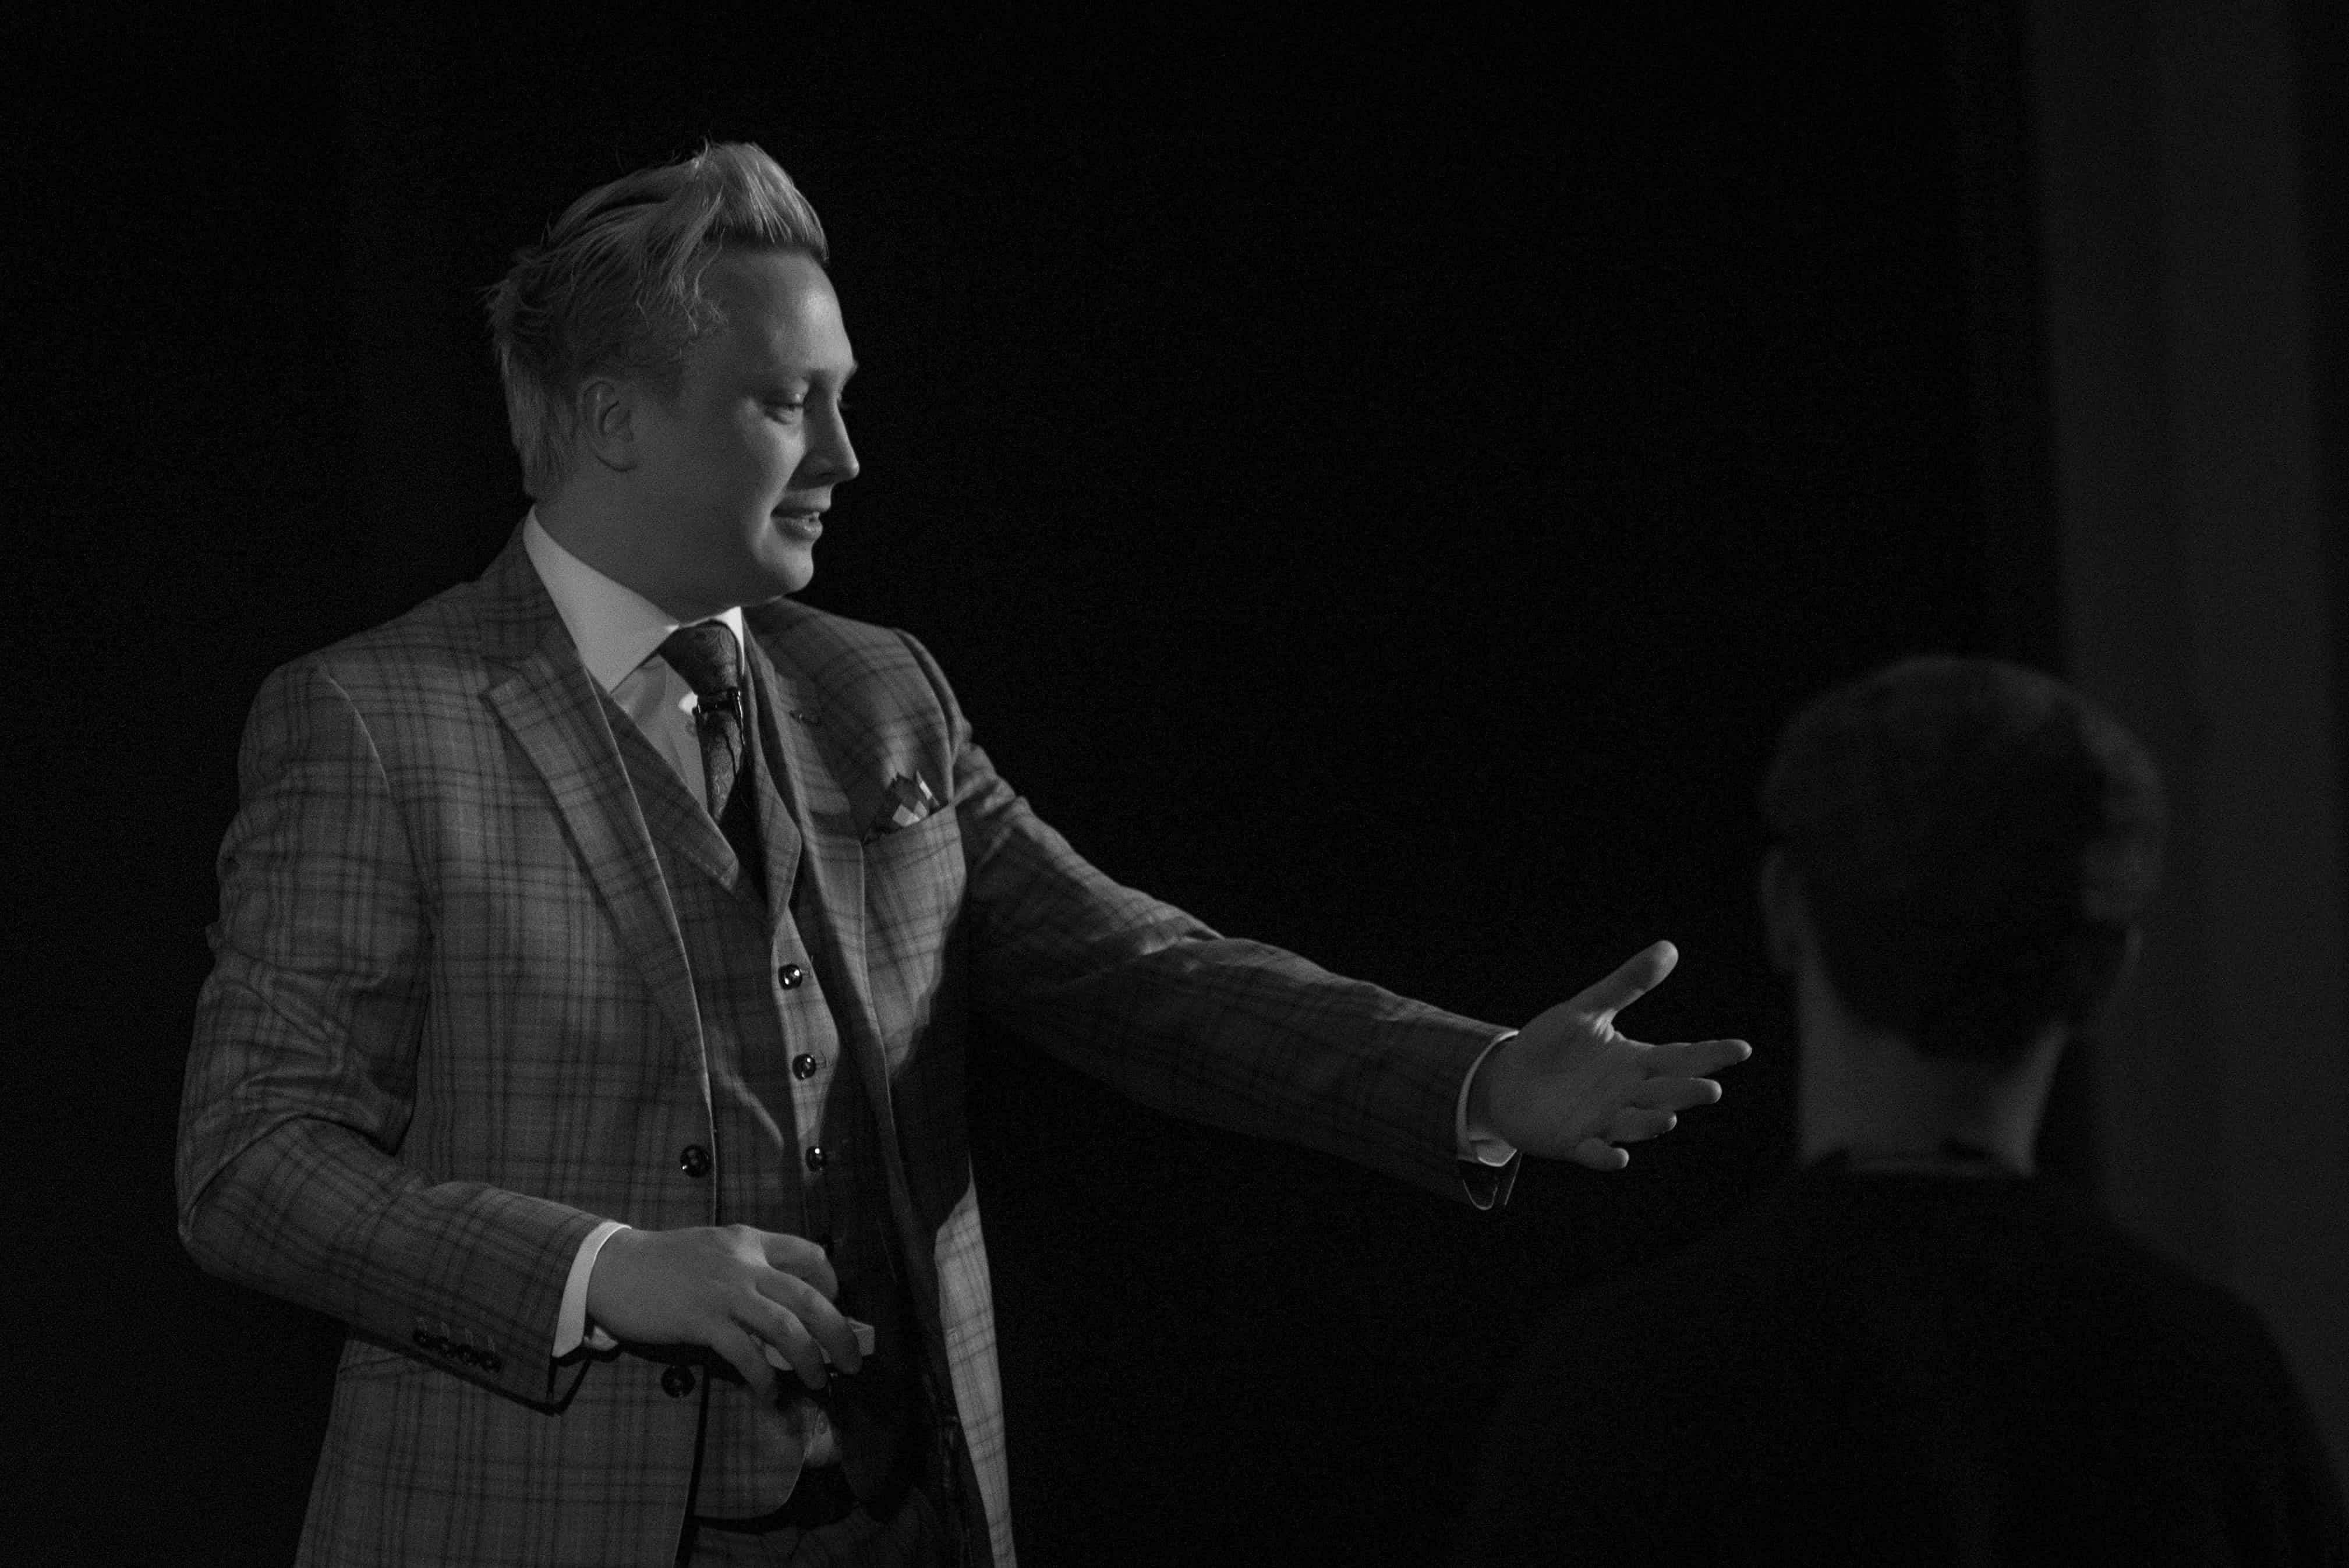 Kennedy the Mentalist performing a mentalist trick